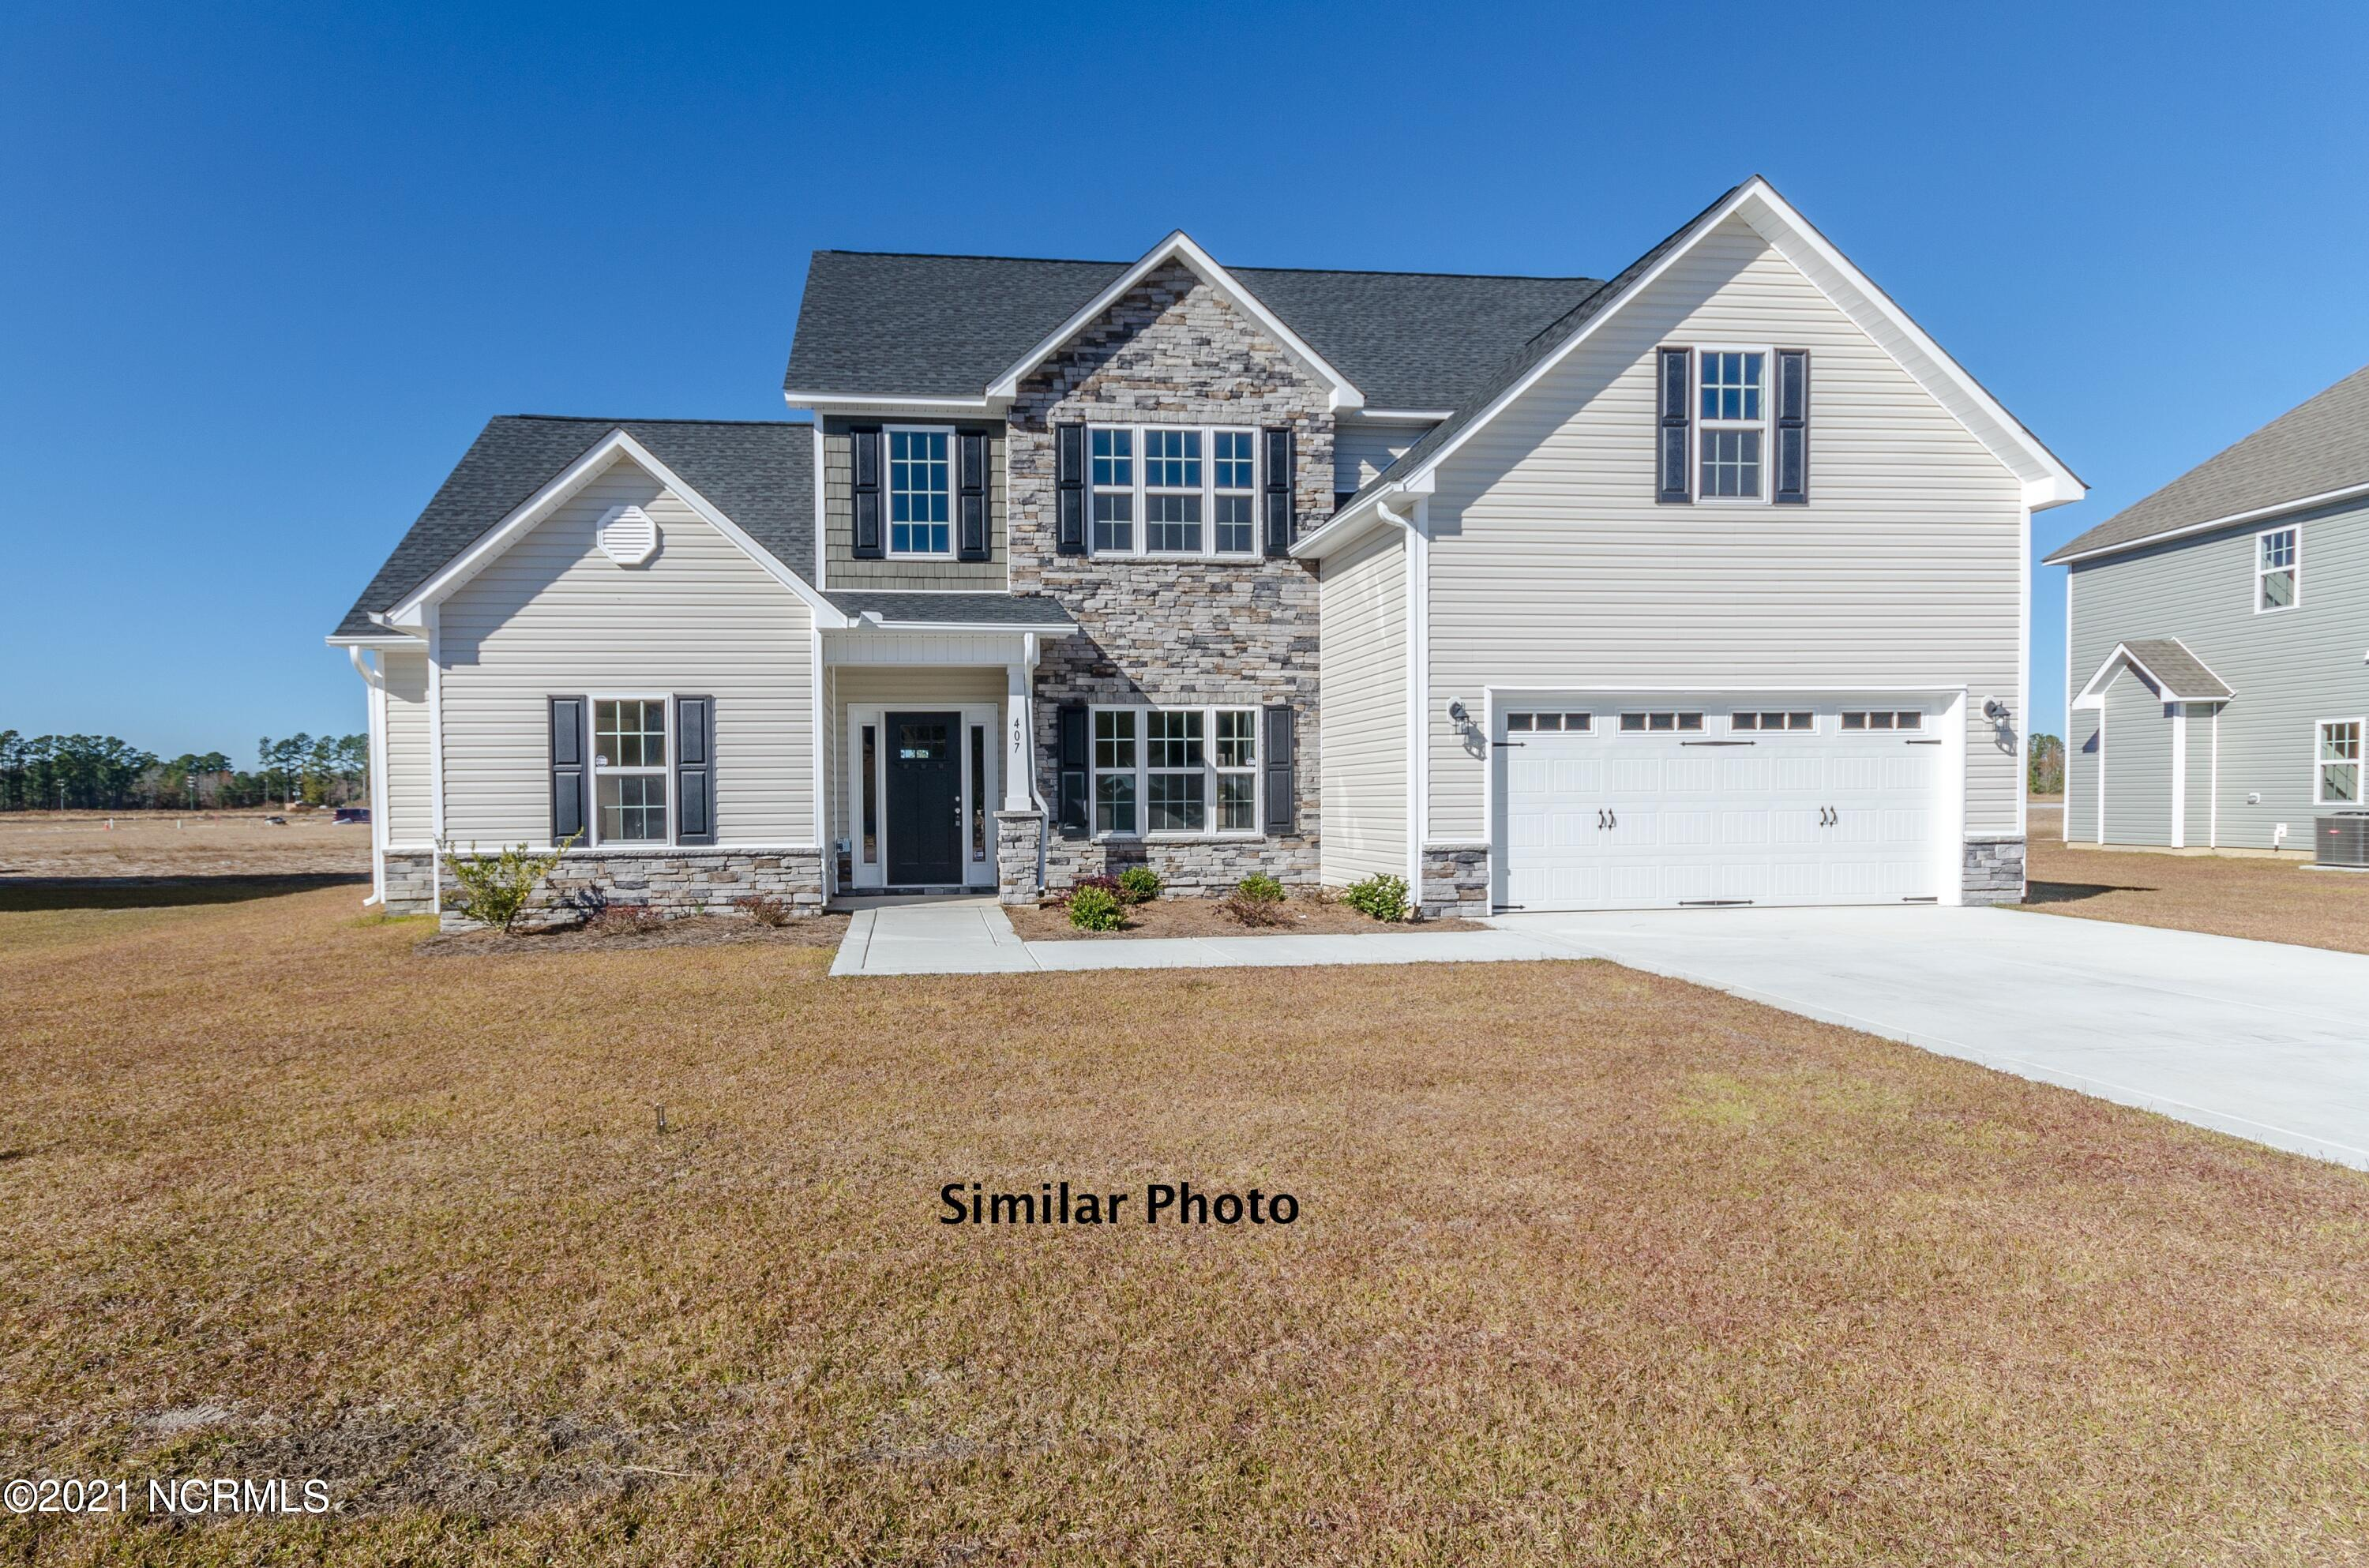 Welcome to Jacksonville's hottest new community, Stateside. Located off of Gum Branch Road behind Stateside Elementary School. All new construction by Onslow County's most trusted and preferred Builder featured in Builder 100/ Top 200 Home Builders in the country. Stateside is 16 miles to Camp Lejeune, 12 miles to New River Air Station and minutes to area schools and shopping. A beautiful new community for active and growing families. Upcoming community amenities will include clubhouse area and community pool. Introducing the Berkley floor plan which boasts with 5 bedrooms and 3.5 bathrooms at approximately 2920 heated square feet. The outside comes equipped with easy to maintain vinyl siding, accented by stone or brick, with a sodded front yard.  Welcome your guests into your home in your two story foyer.  The formal dining room is the perfect place to gather for special events and family meals.  The chef in the family is sure to fall in love with the kitchen.  Flat panel staggered cabinets, large pantry, an island for food preparation and a stainless steel appliance package to include the dishwasher, microwave hood, and smooth top range.  Enjoy your morning cup of joe in the open breakfast nook.  Movie nights made simple in the large family room.  Complete with ceiling fan and electric fireplace surrounded by marble and topped with a custom mantle. Convenient first floor master suite allows for privacy and relaxation.  The master suite features ceiling fan and master bathroom.  The master bathroom includes a double vanity with cultured marble counters and custom mirror, water closet, separate shower and soaking tub.  Follow through the master bathroom to the ENORMOUS master walk-in closet.  Upstairs you will find the remaining 4 bedrooms and 2 bathrooms, all perfectly sized and pre-wired for ceiling fans.  Bedroom 5 features a sitting area.  Wander outside to your covered back patio, the perfect place to gather for BBQ's or those warm Carolina evenings.  Your two 